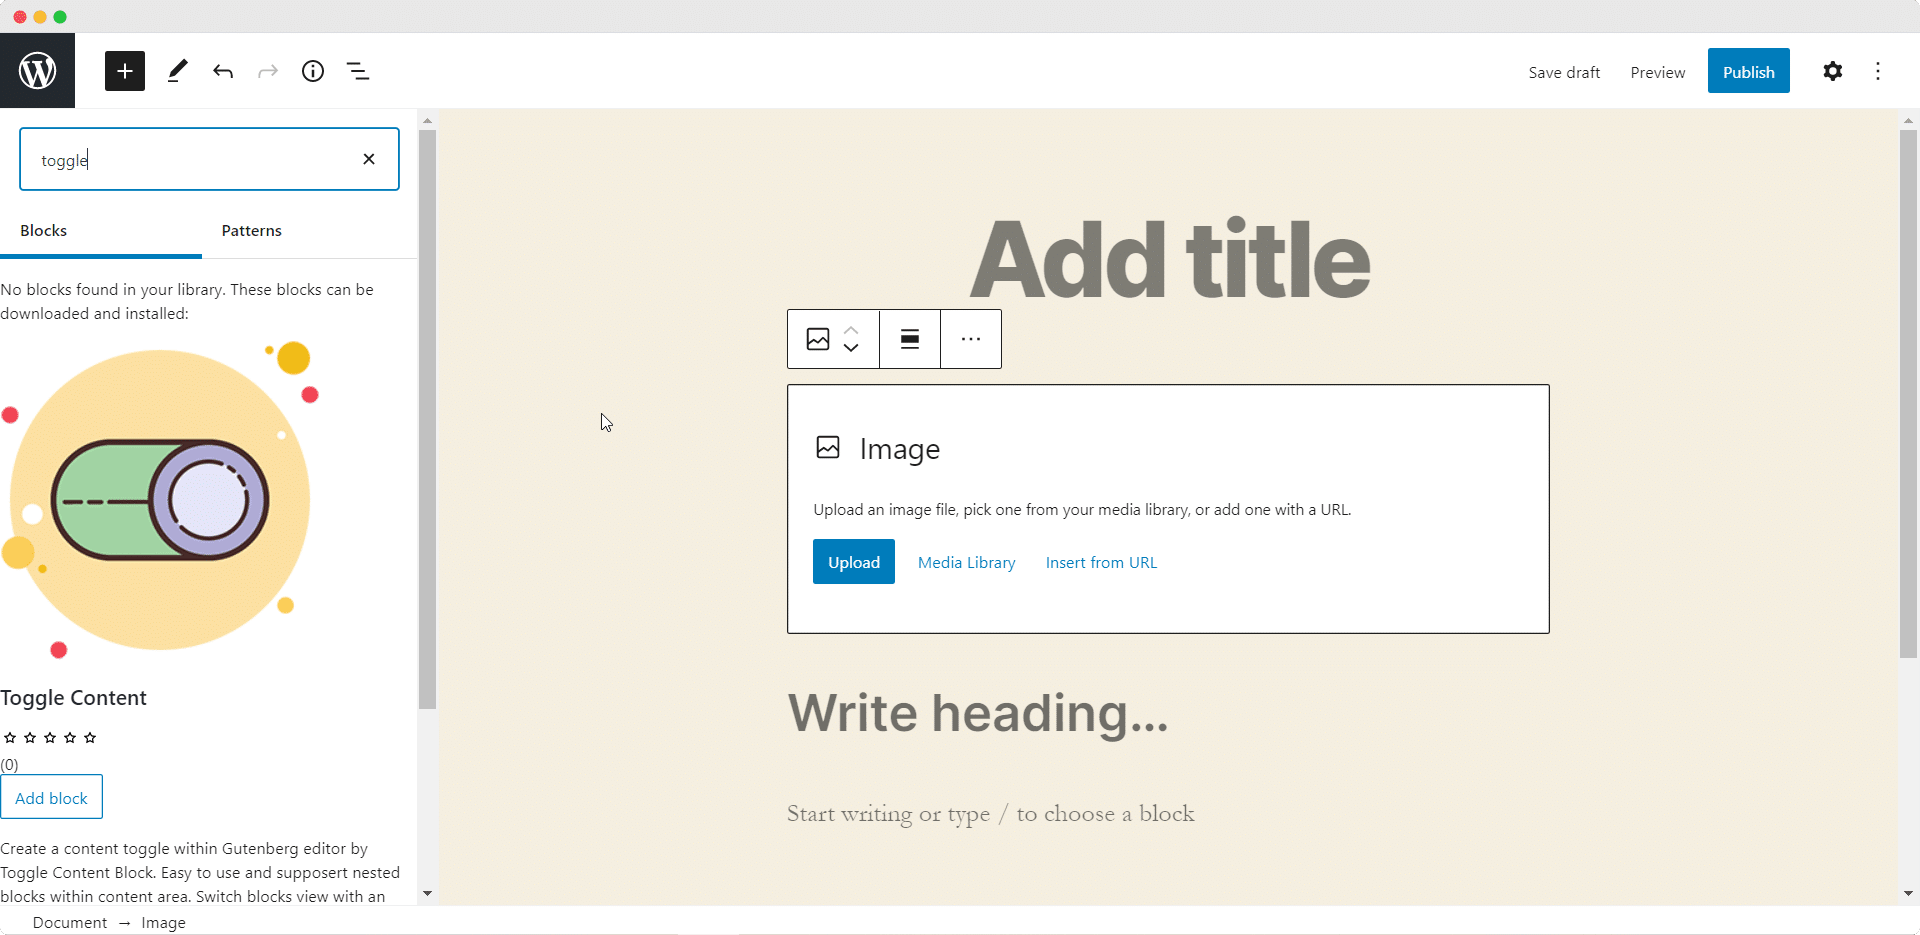 WordPress 5.5 Next Release